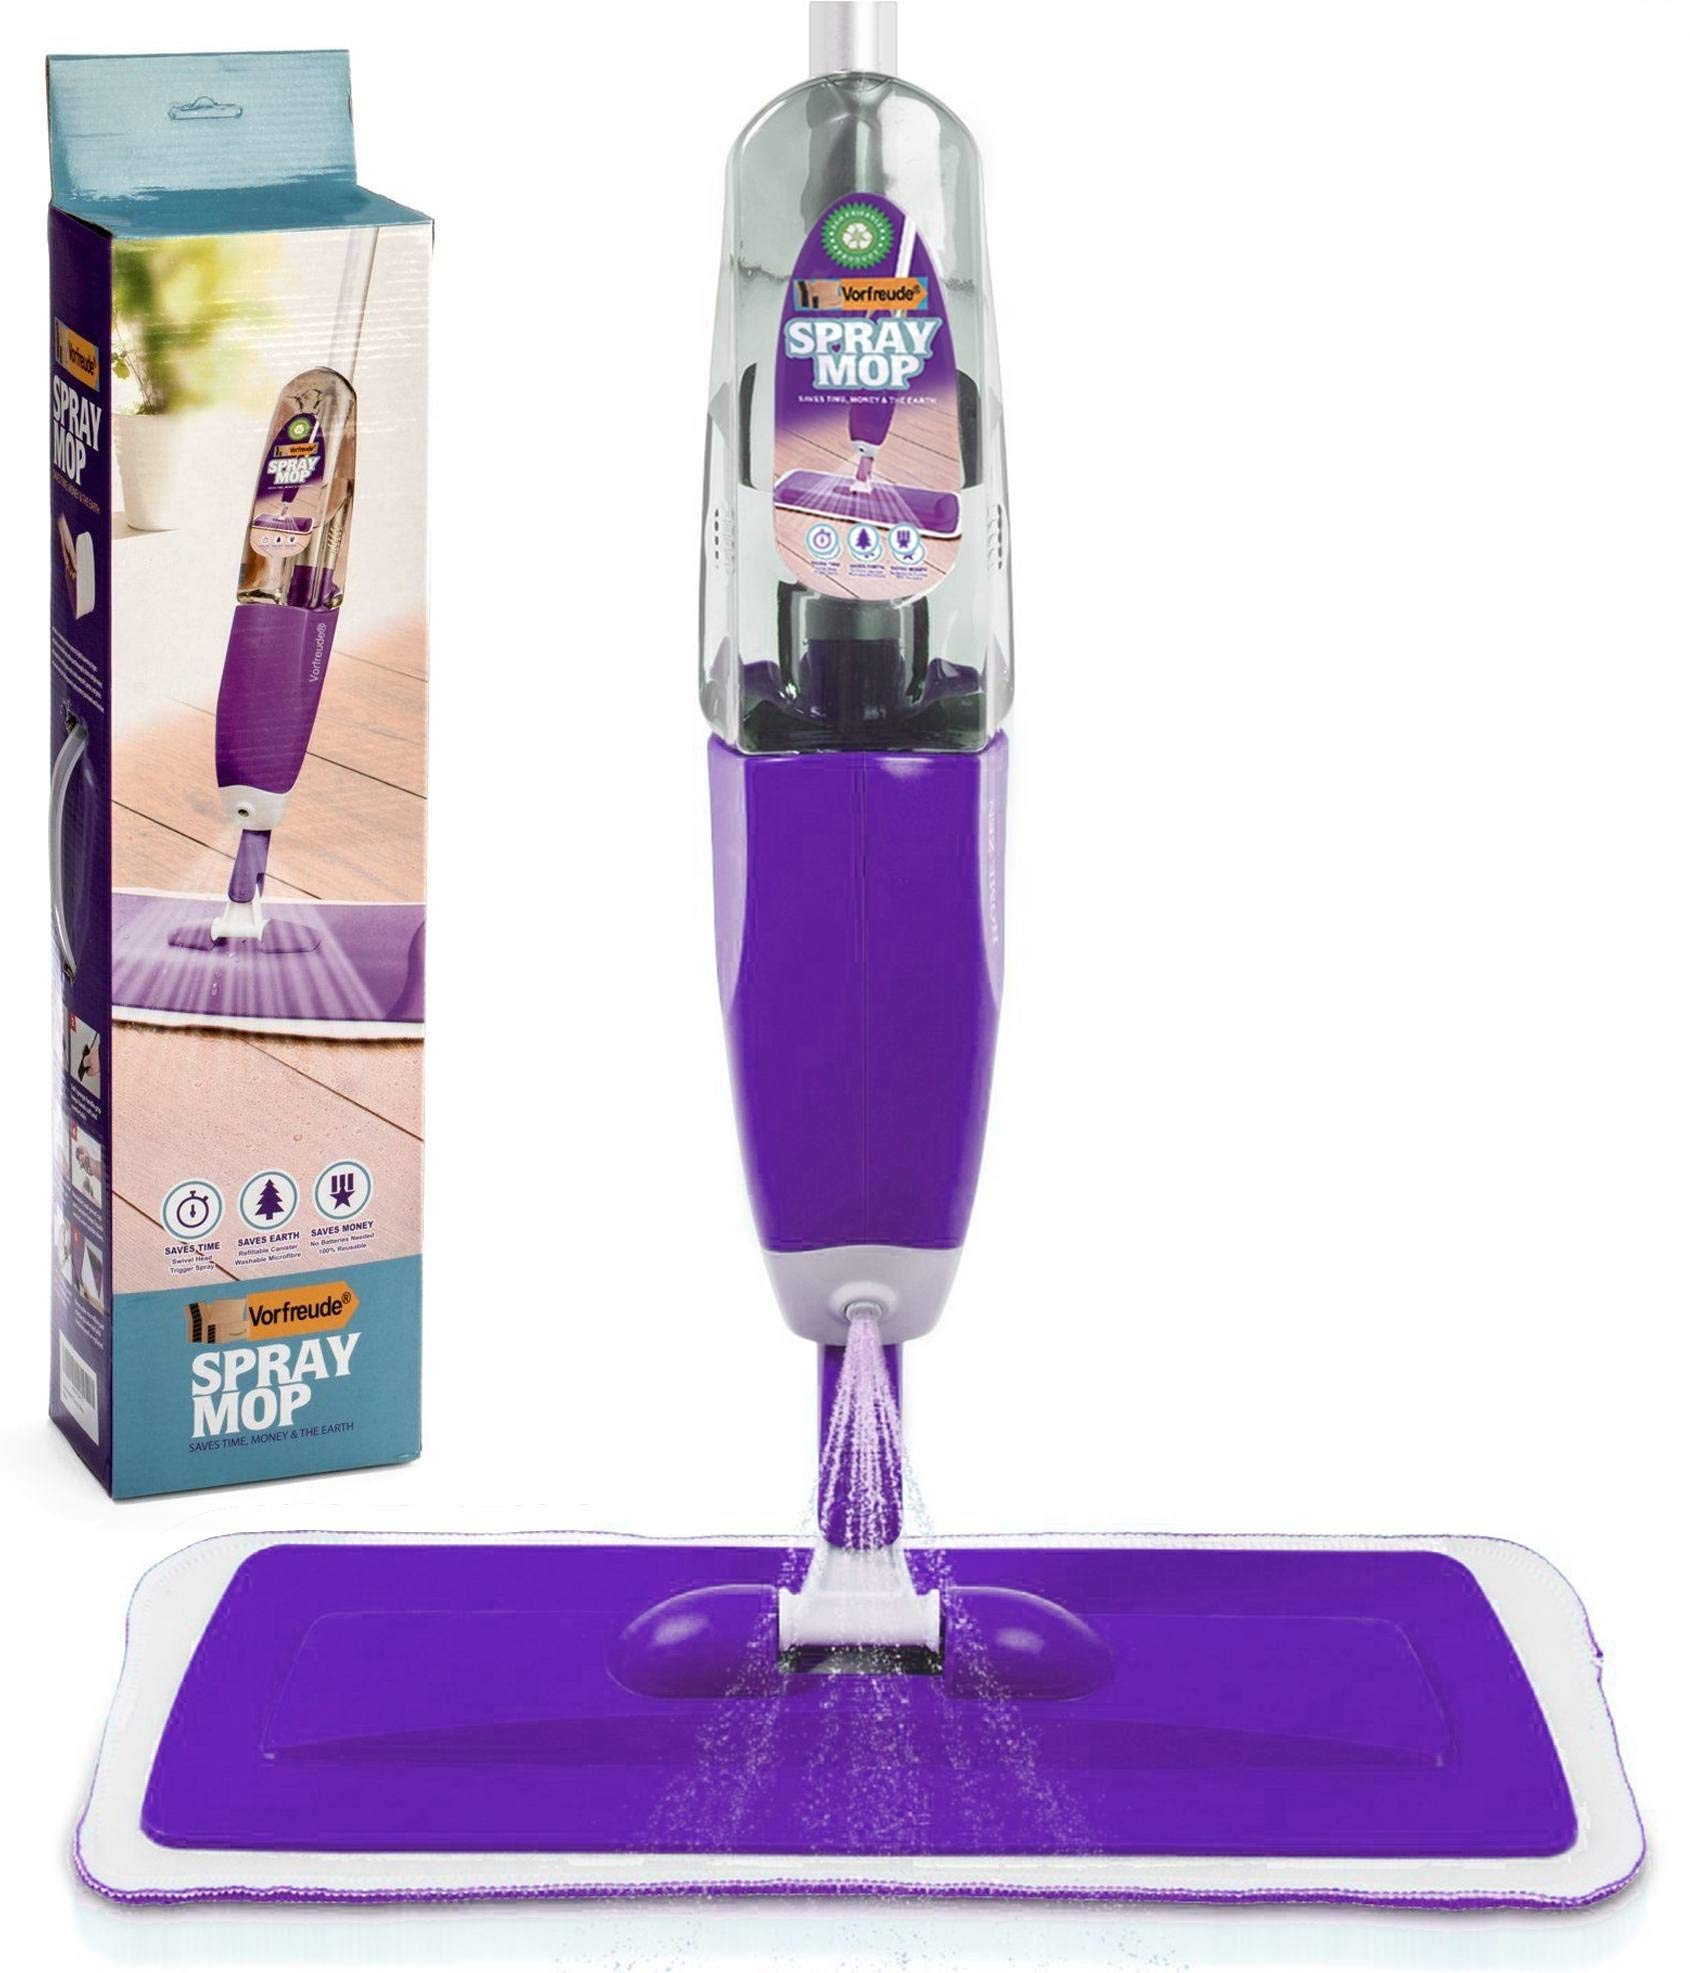 Vorfreude -Floor Spray Mop - Included Refillable 700Ml Capacity Bottle and Reusable Machine Washable Microfiber Pad